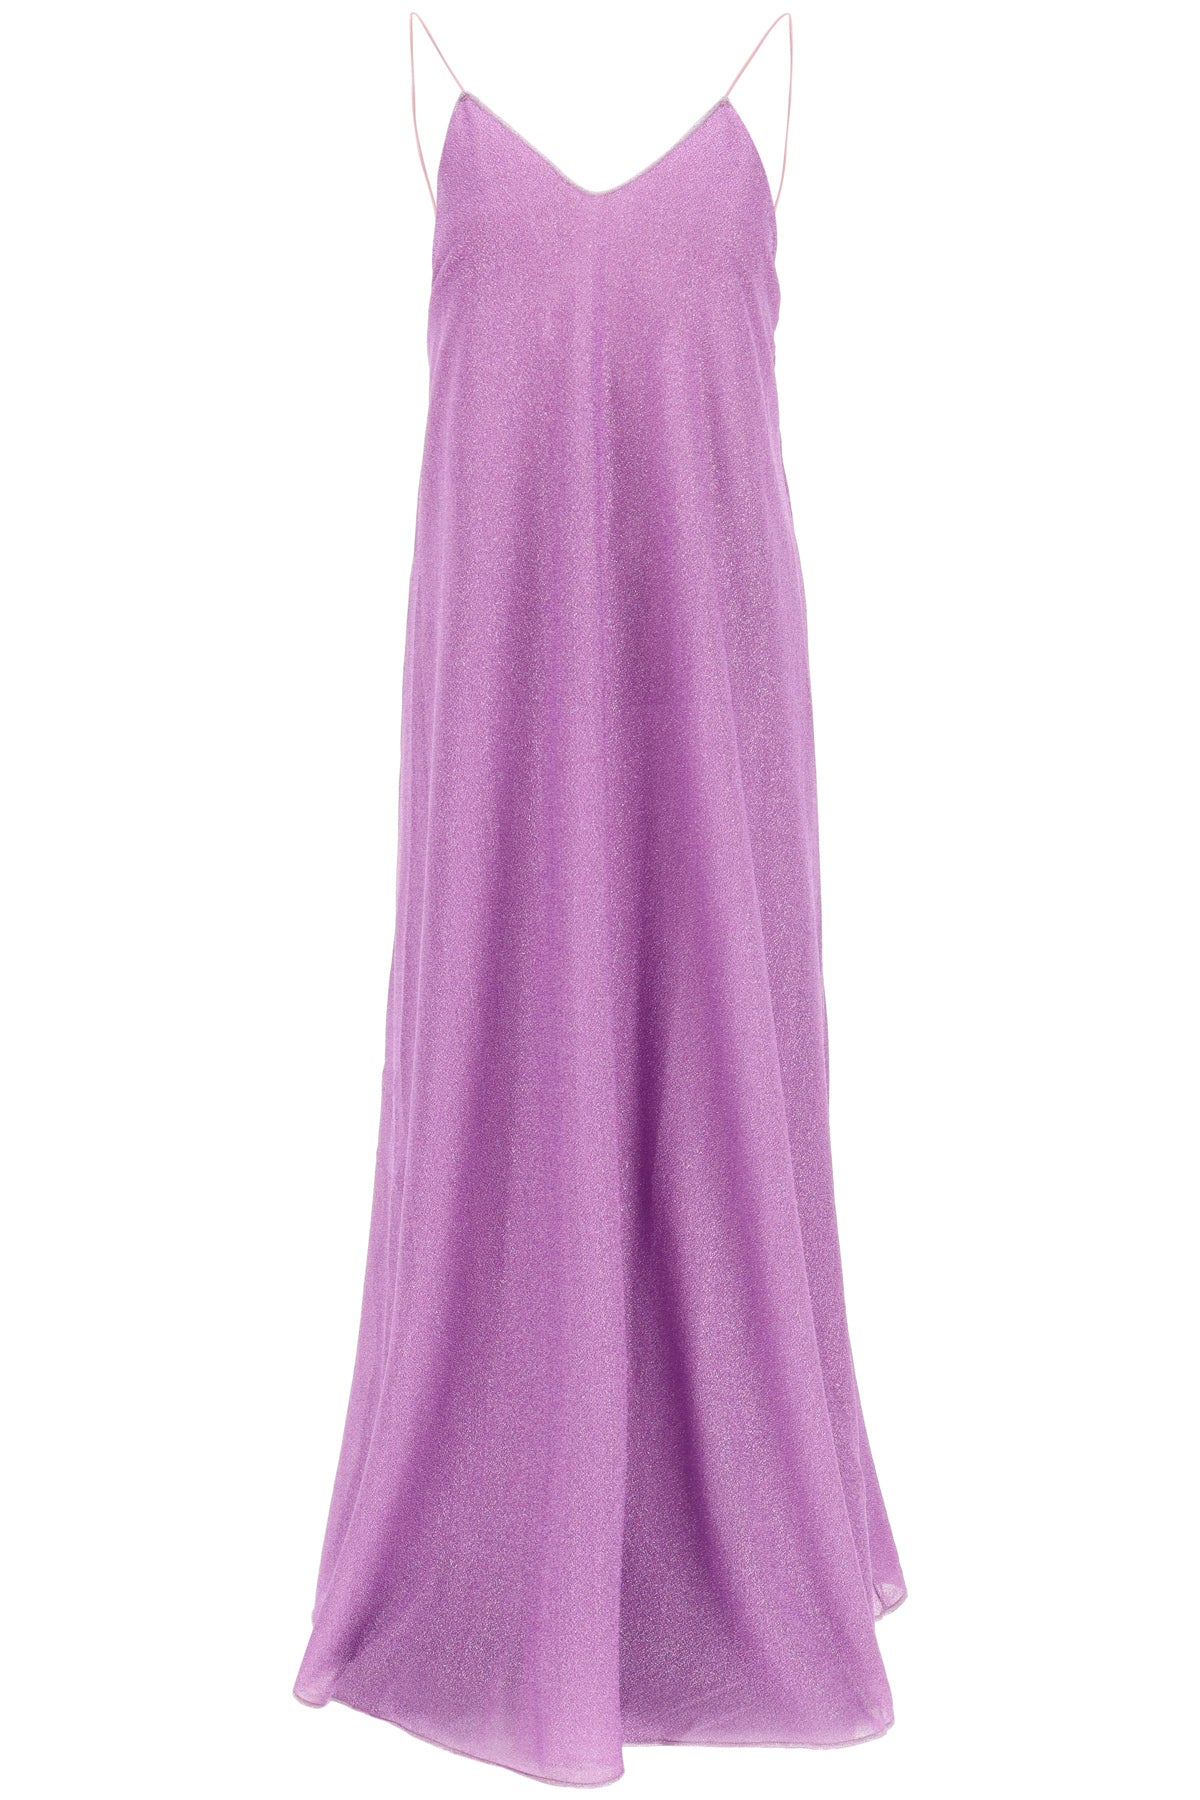 Oseree Gowns OSÉREE FLARED MAXI DRESS